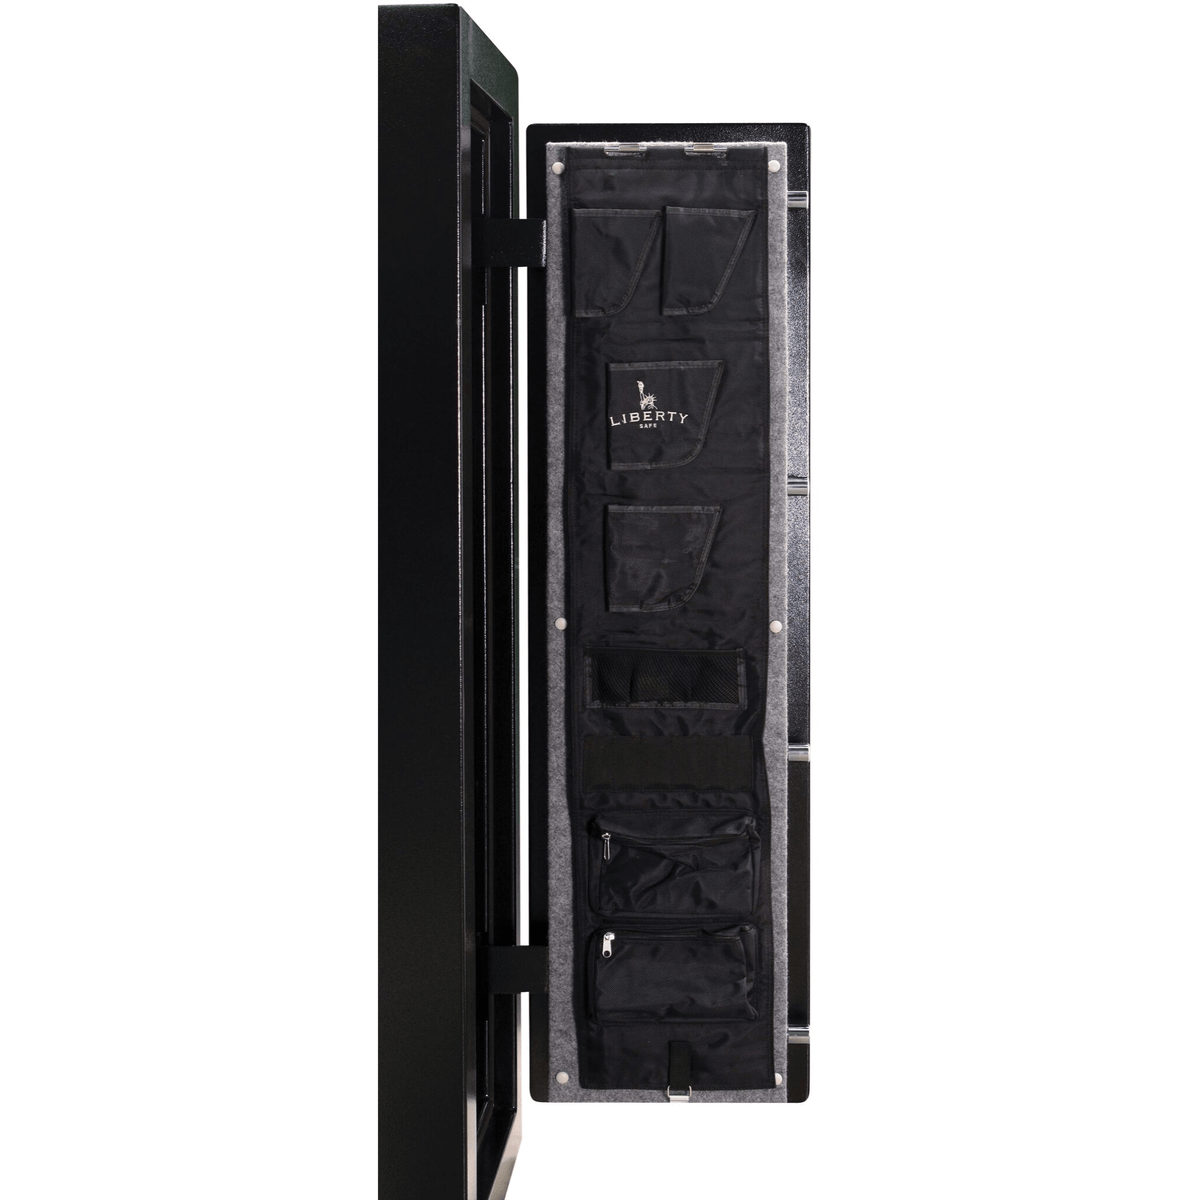 Accessory - Storage - Door Panel - 12 size safes